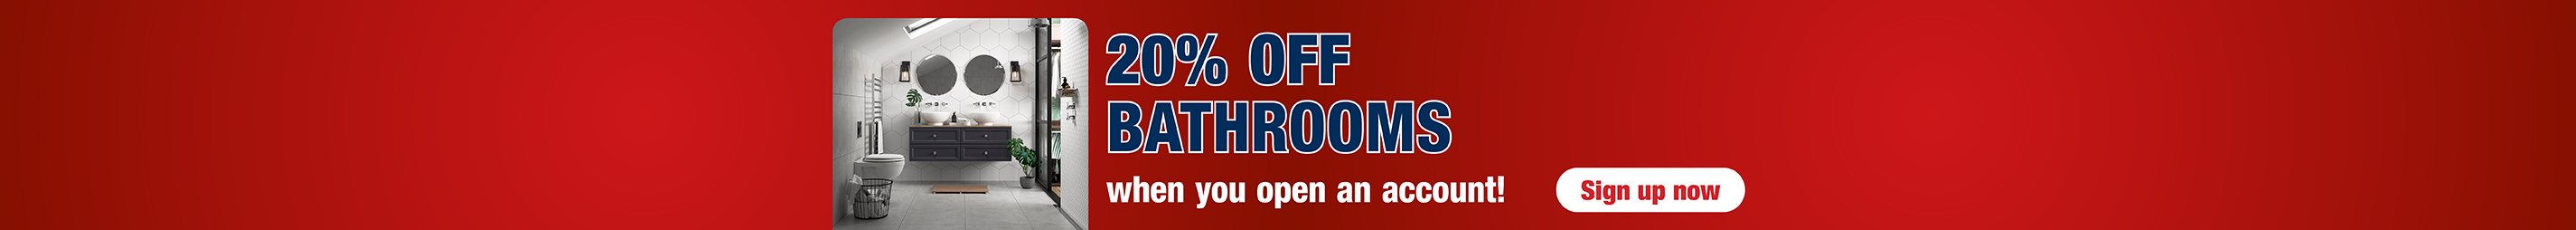 20% off Bathrooms